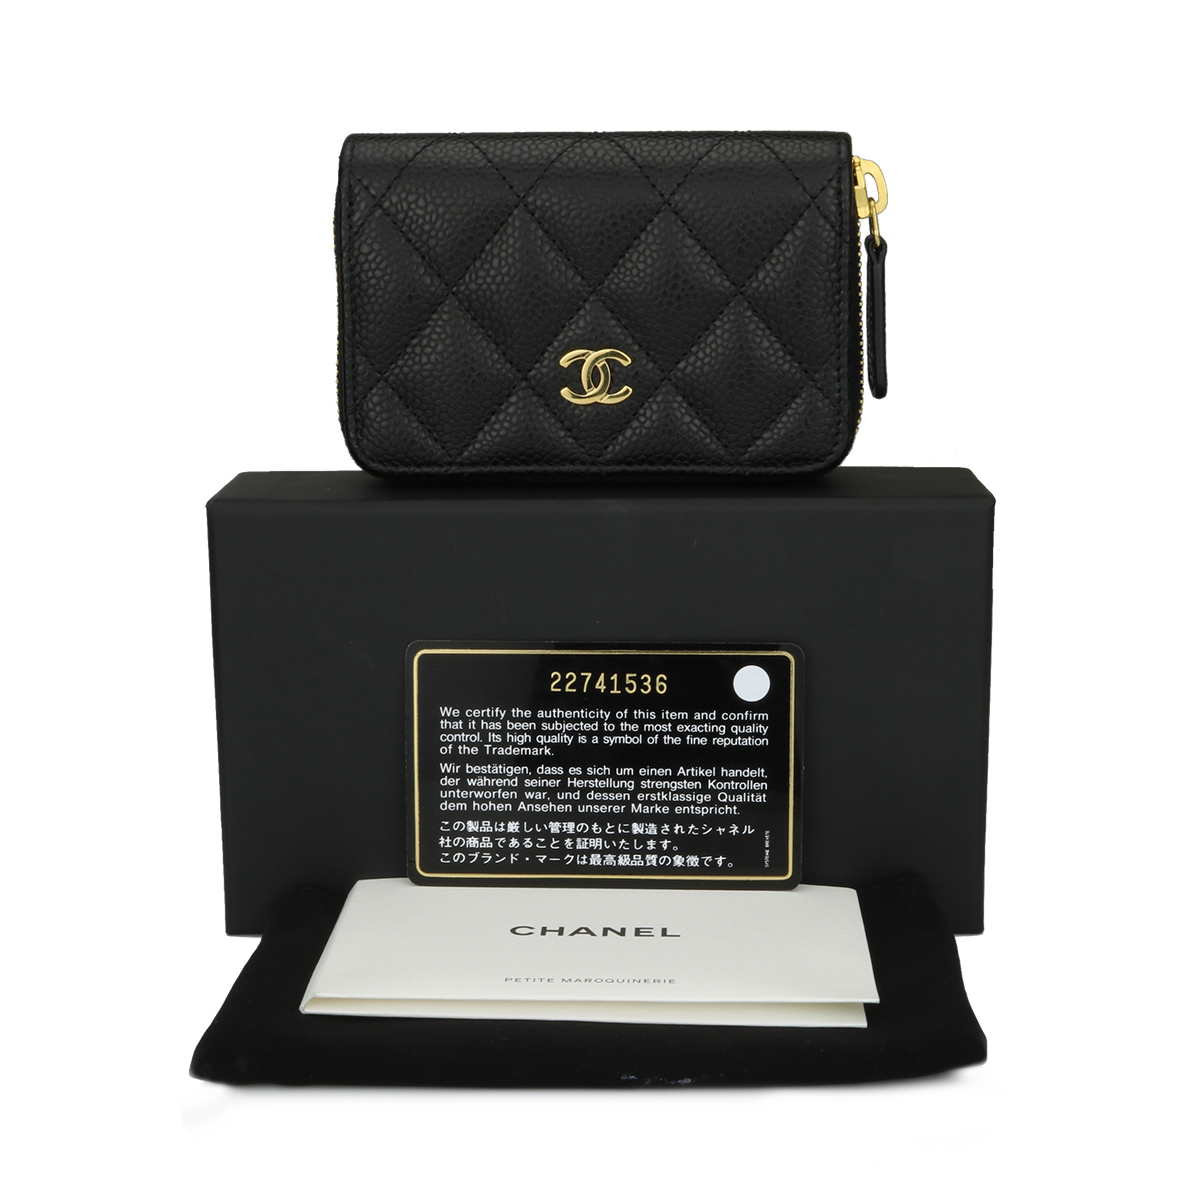 ff73d52f7012 CHANEL Small Zip Wallet/ Coin Purse Black Caviar Gold Hardware 2017 -  BoutiQi Bags